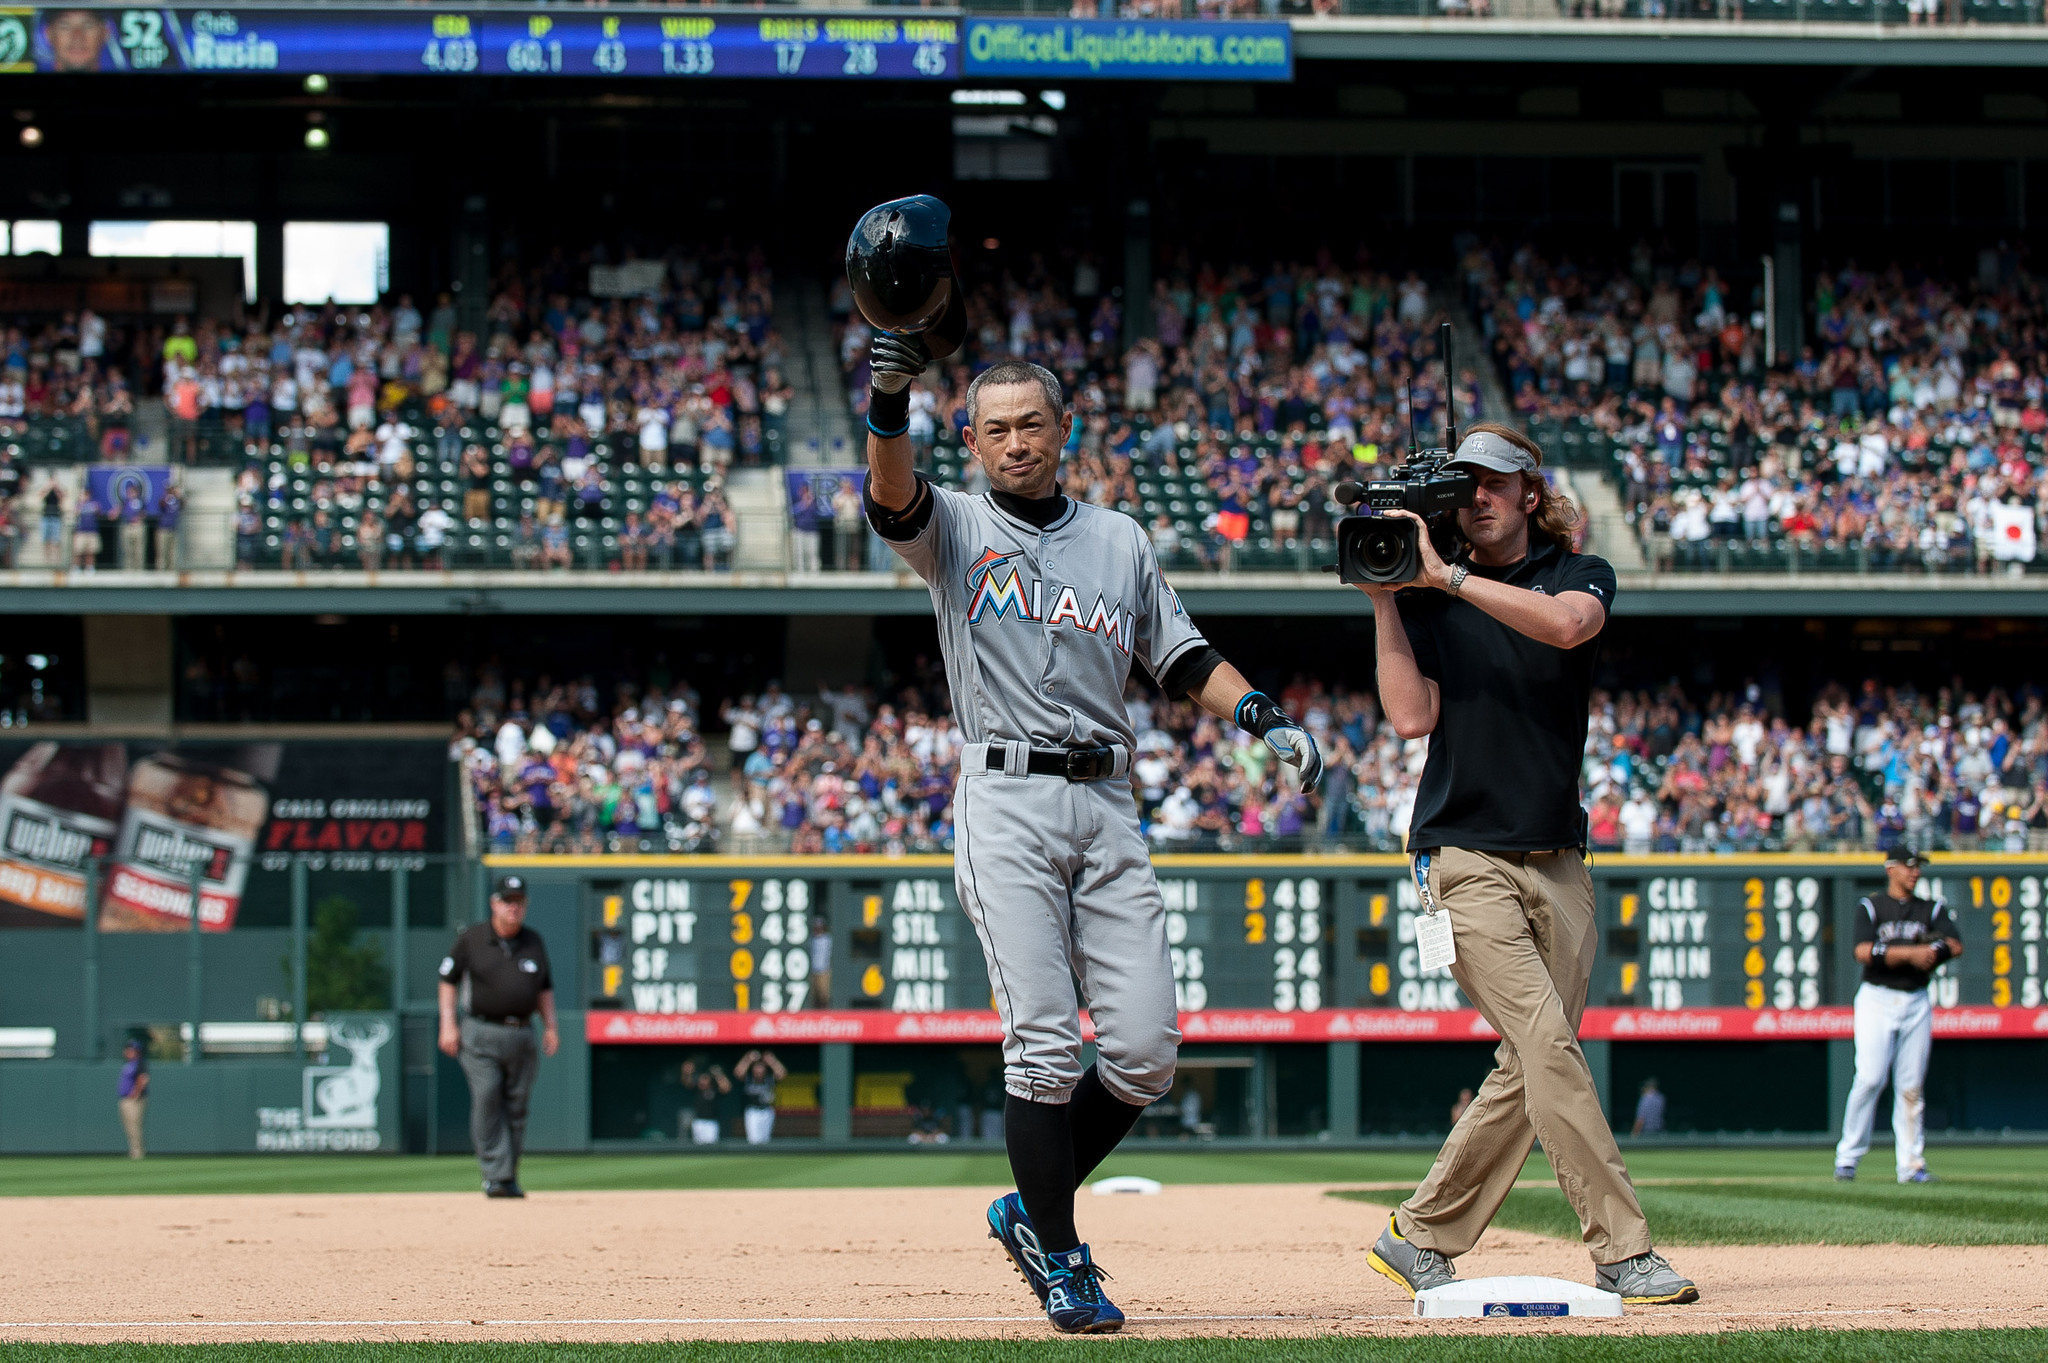 Sfl-photos-ichiro-goes-after-3-000-hits-in-denver-20160807